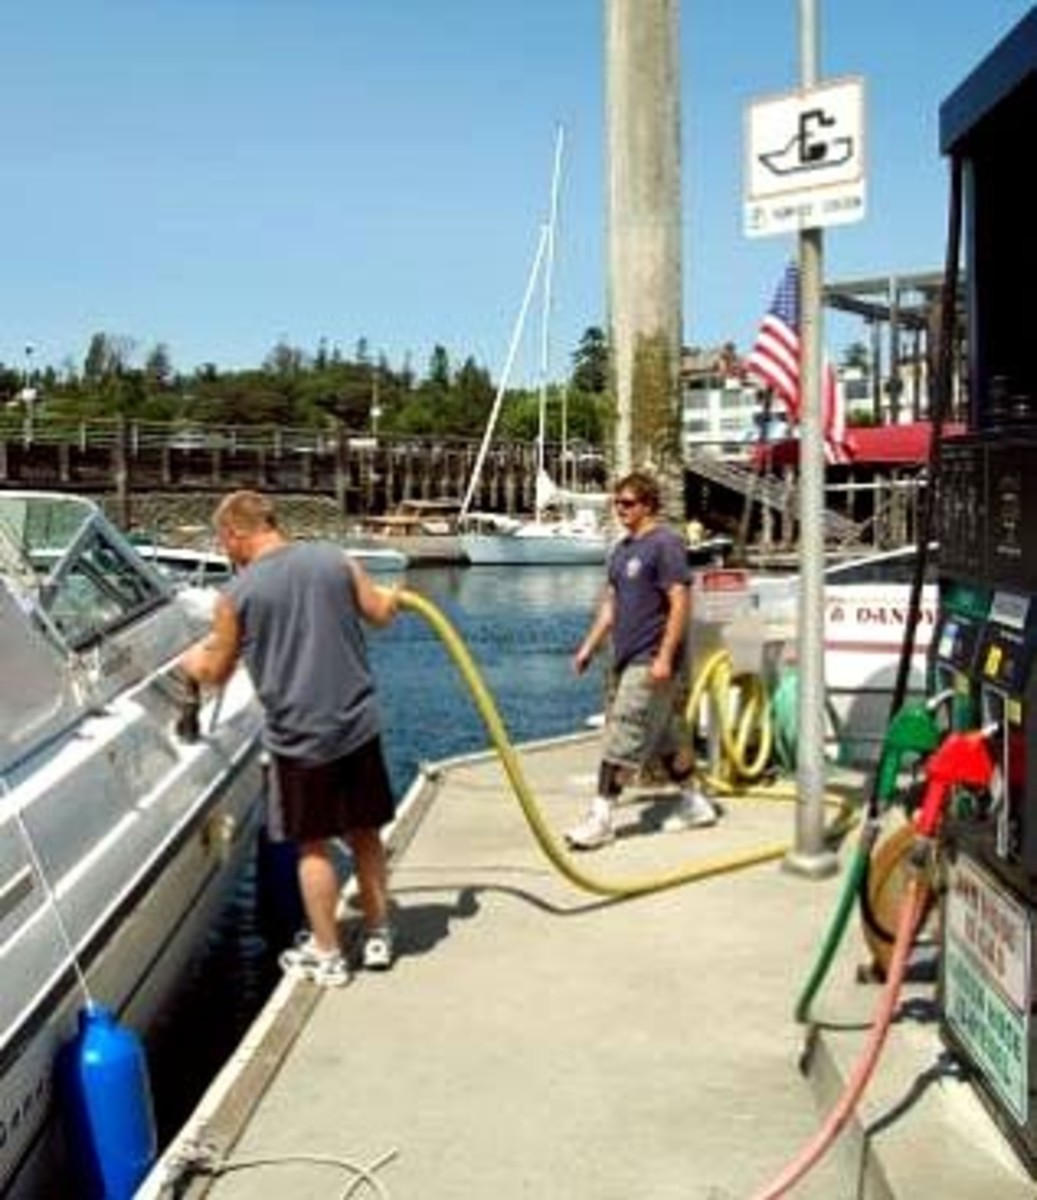 Dockside pump-out stations are self-service